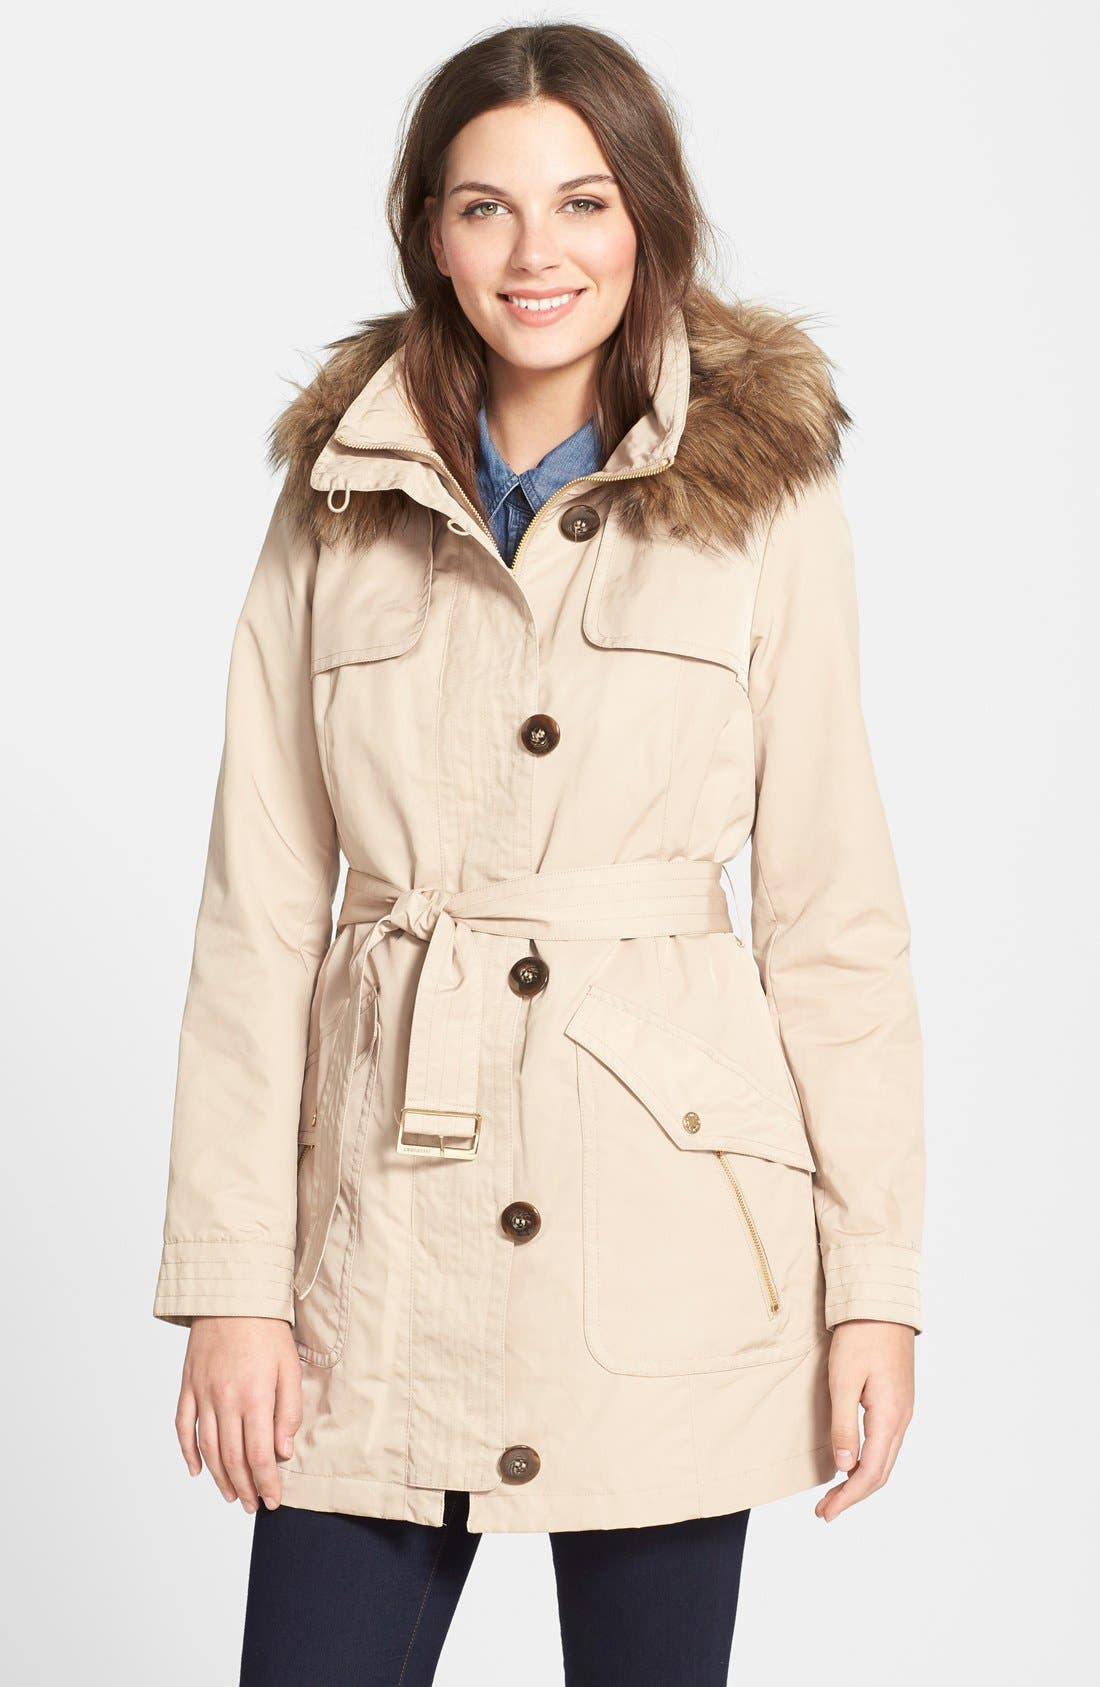 Alternate Image 1 Selected - Ellen Tracy Belted Trench Coat with Detachable Faux Fur Trim Hood and Liner (Online Only)